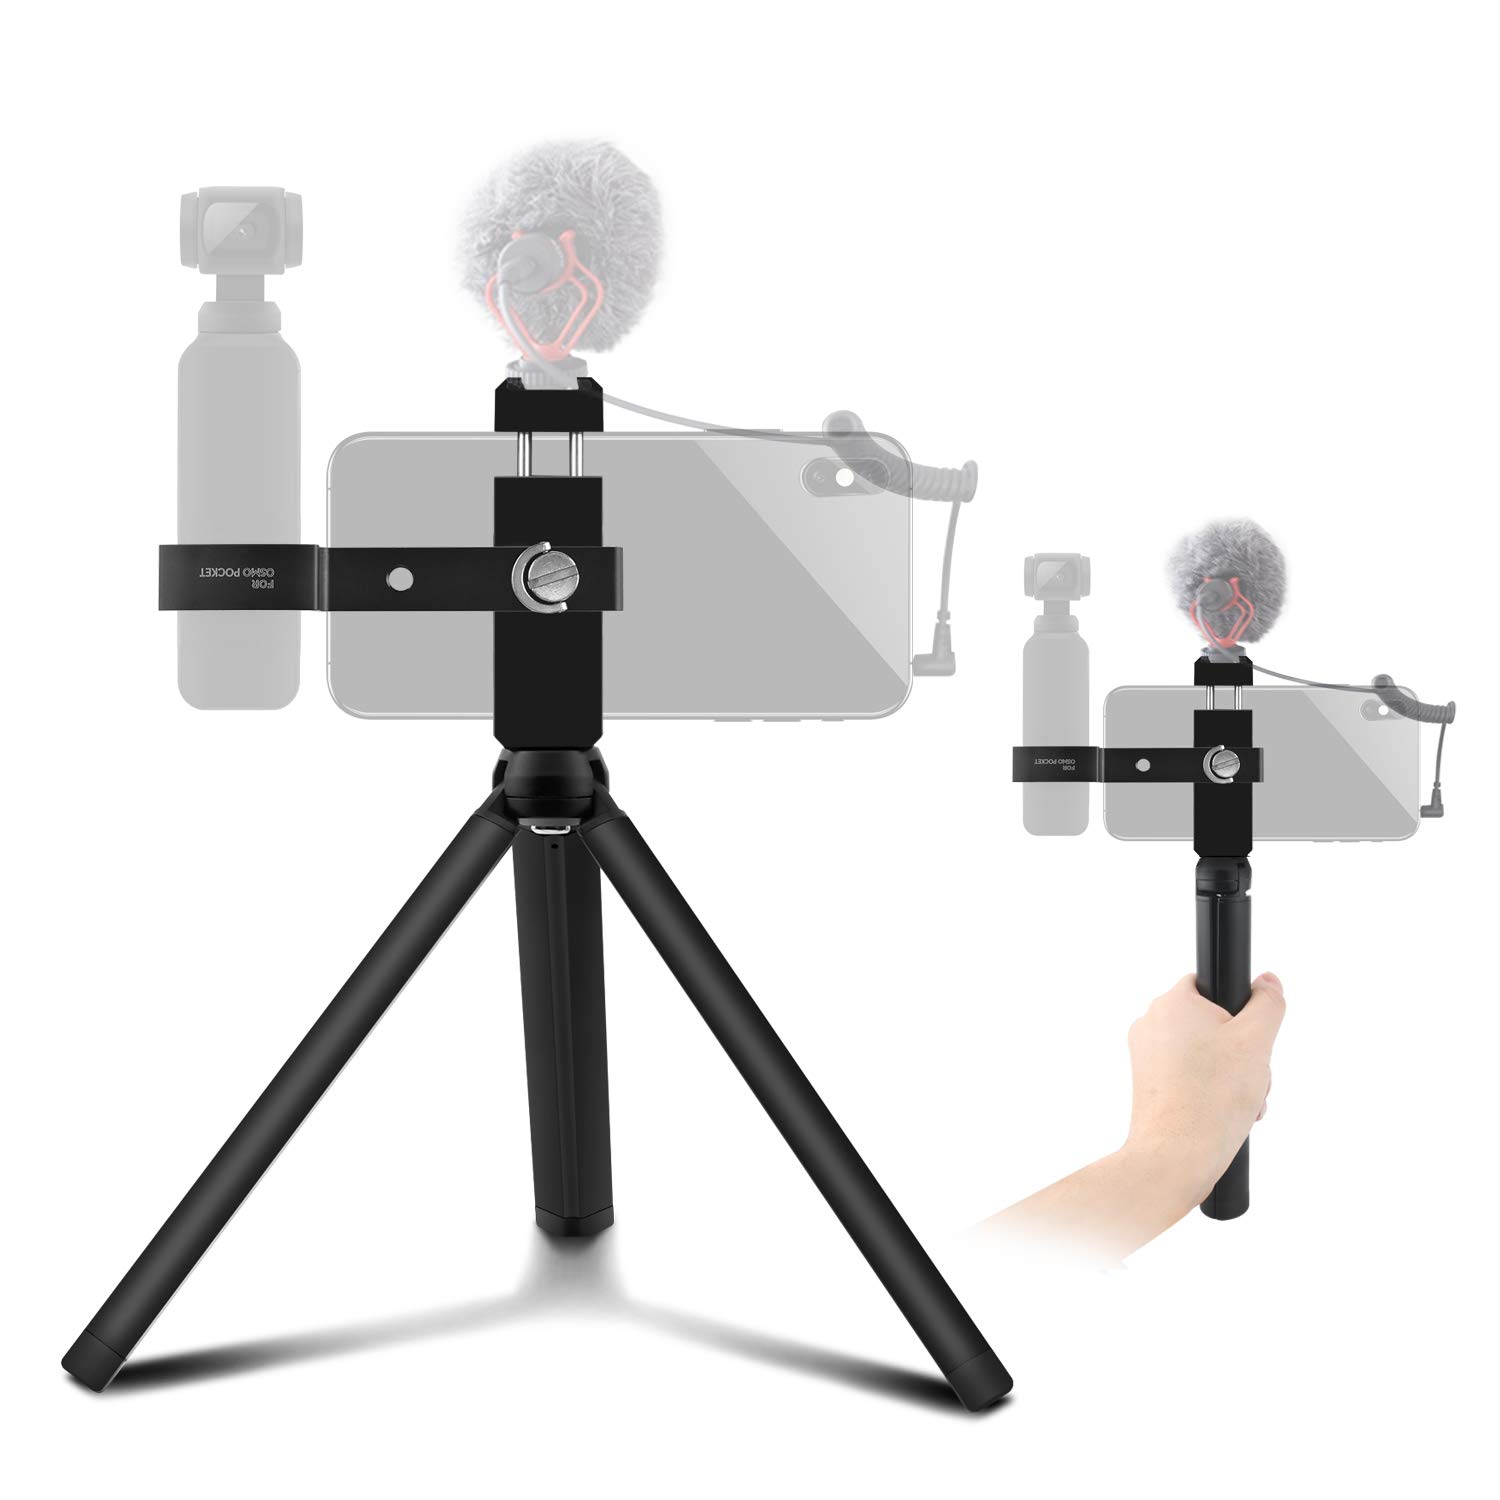 Alcoon Aluminum Handheld Phone Holder Tripod Mount Stand Compatible for DJI Osmo Pocket Accessories with Cold Shoe Interface and 1/4 Inch Thread